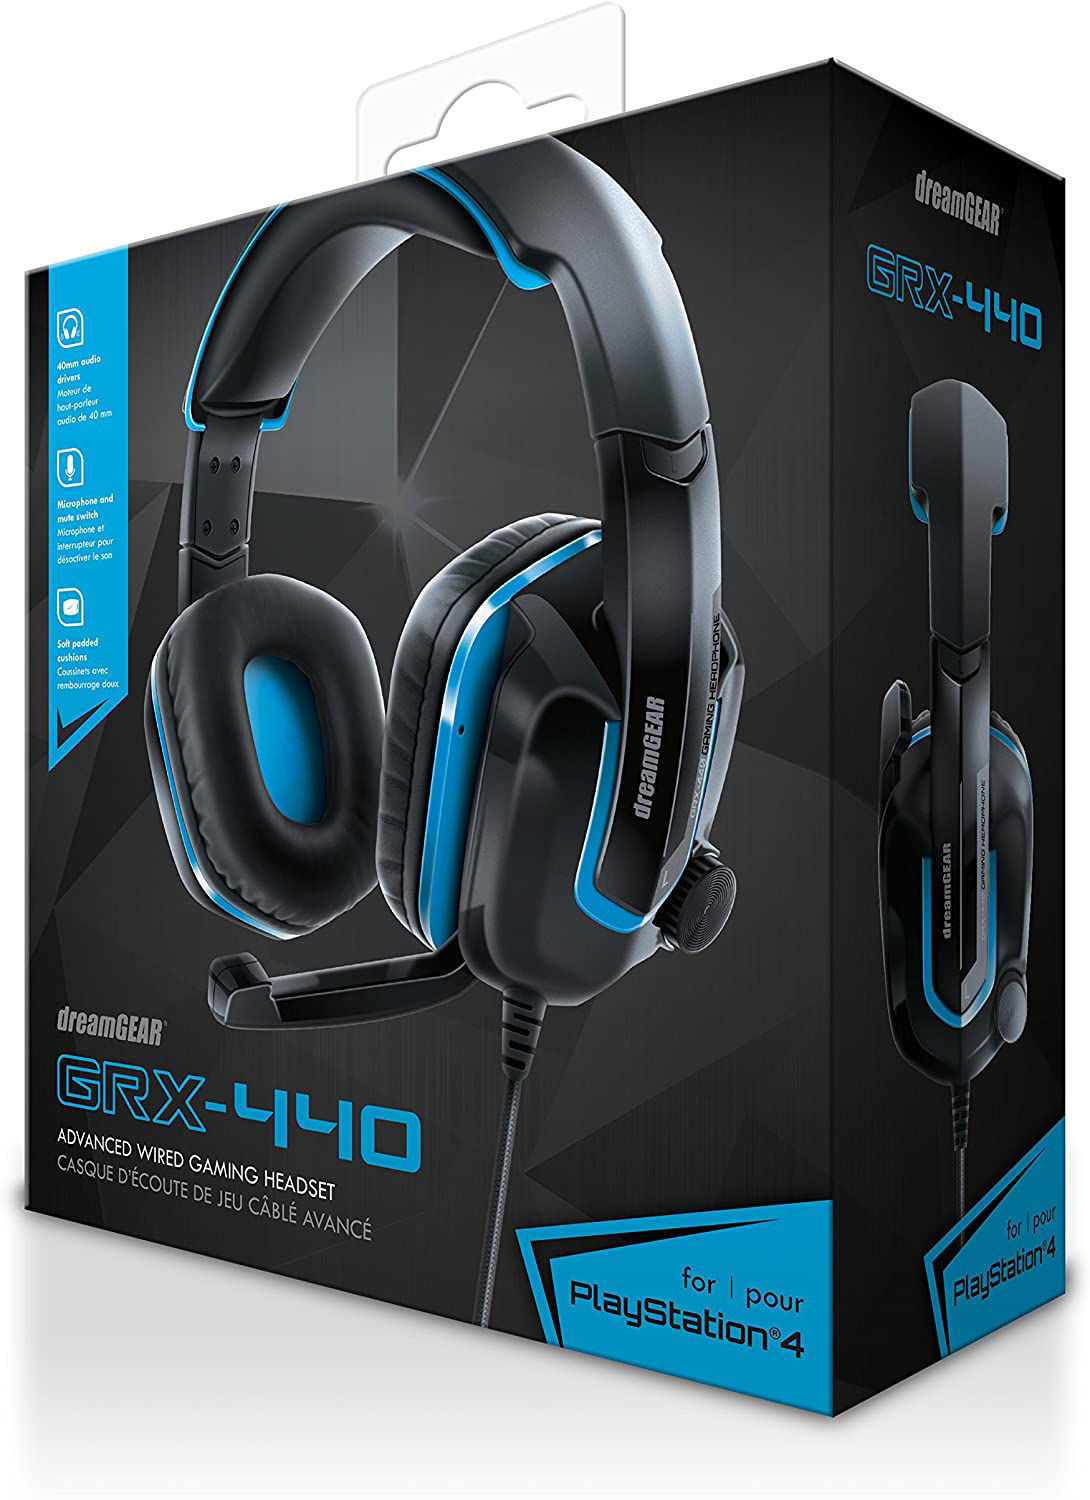 Picture of dreamGEAR GRX-440 Wired Advanced Gaming Headset for PS4 - Black/Blue